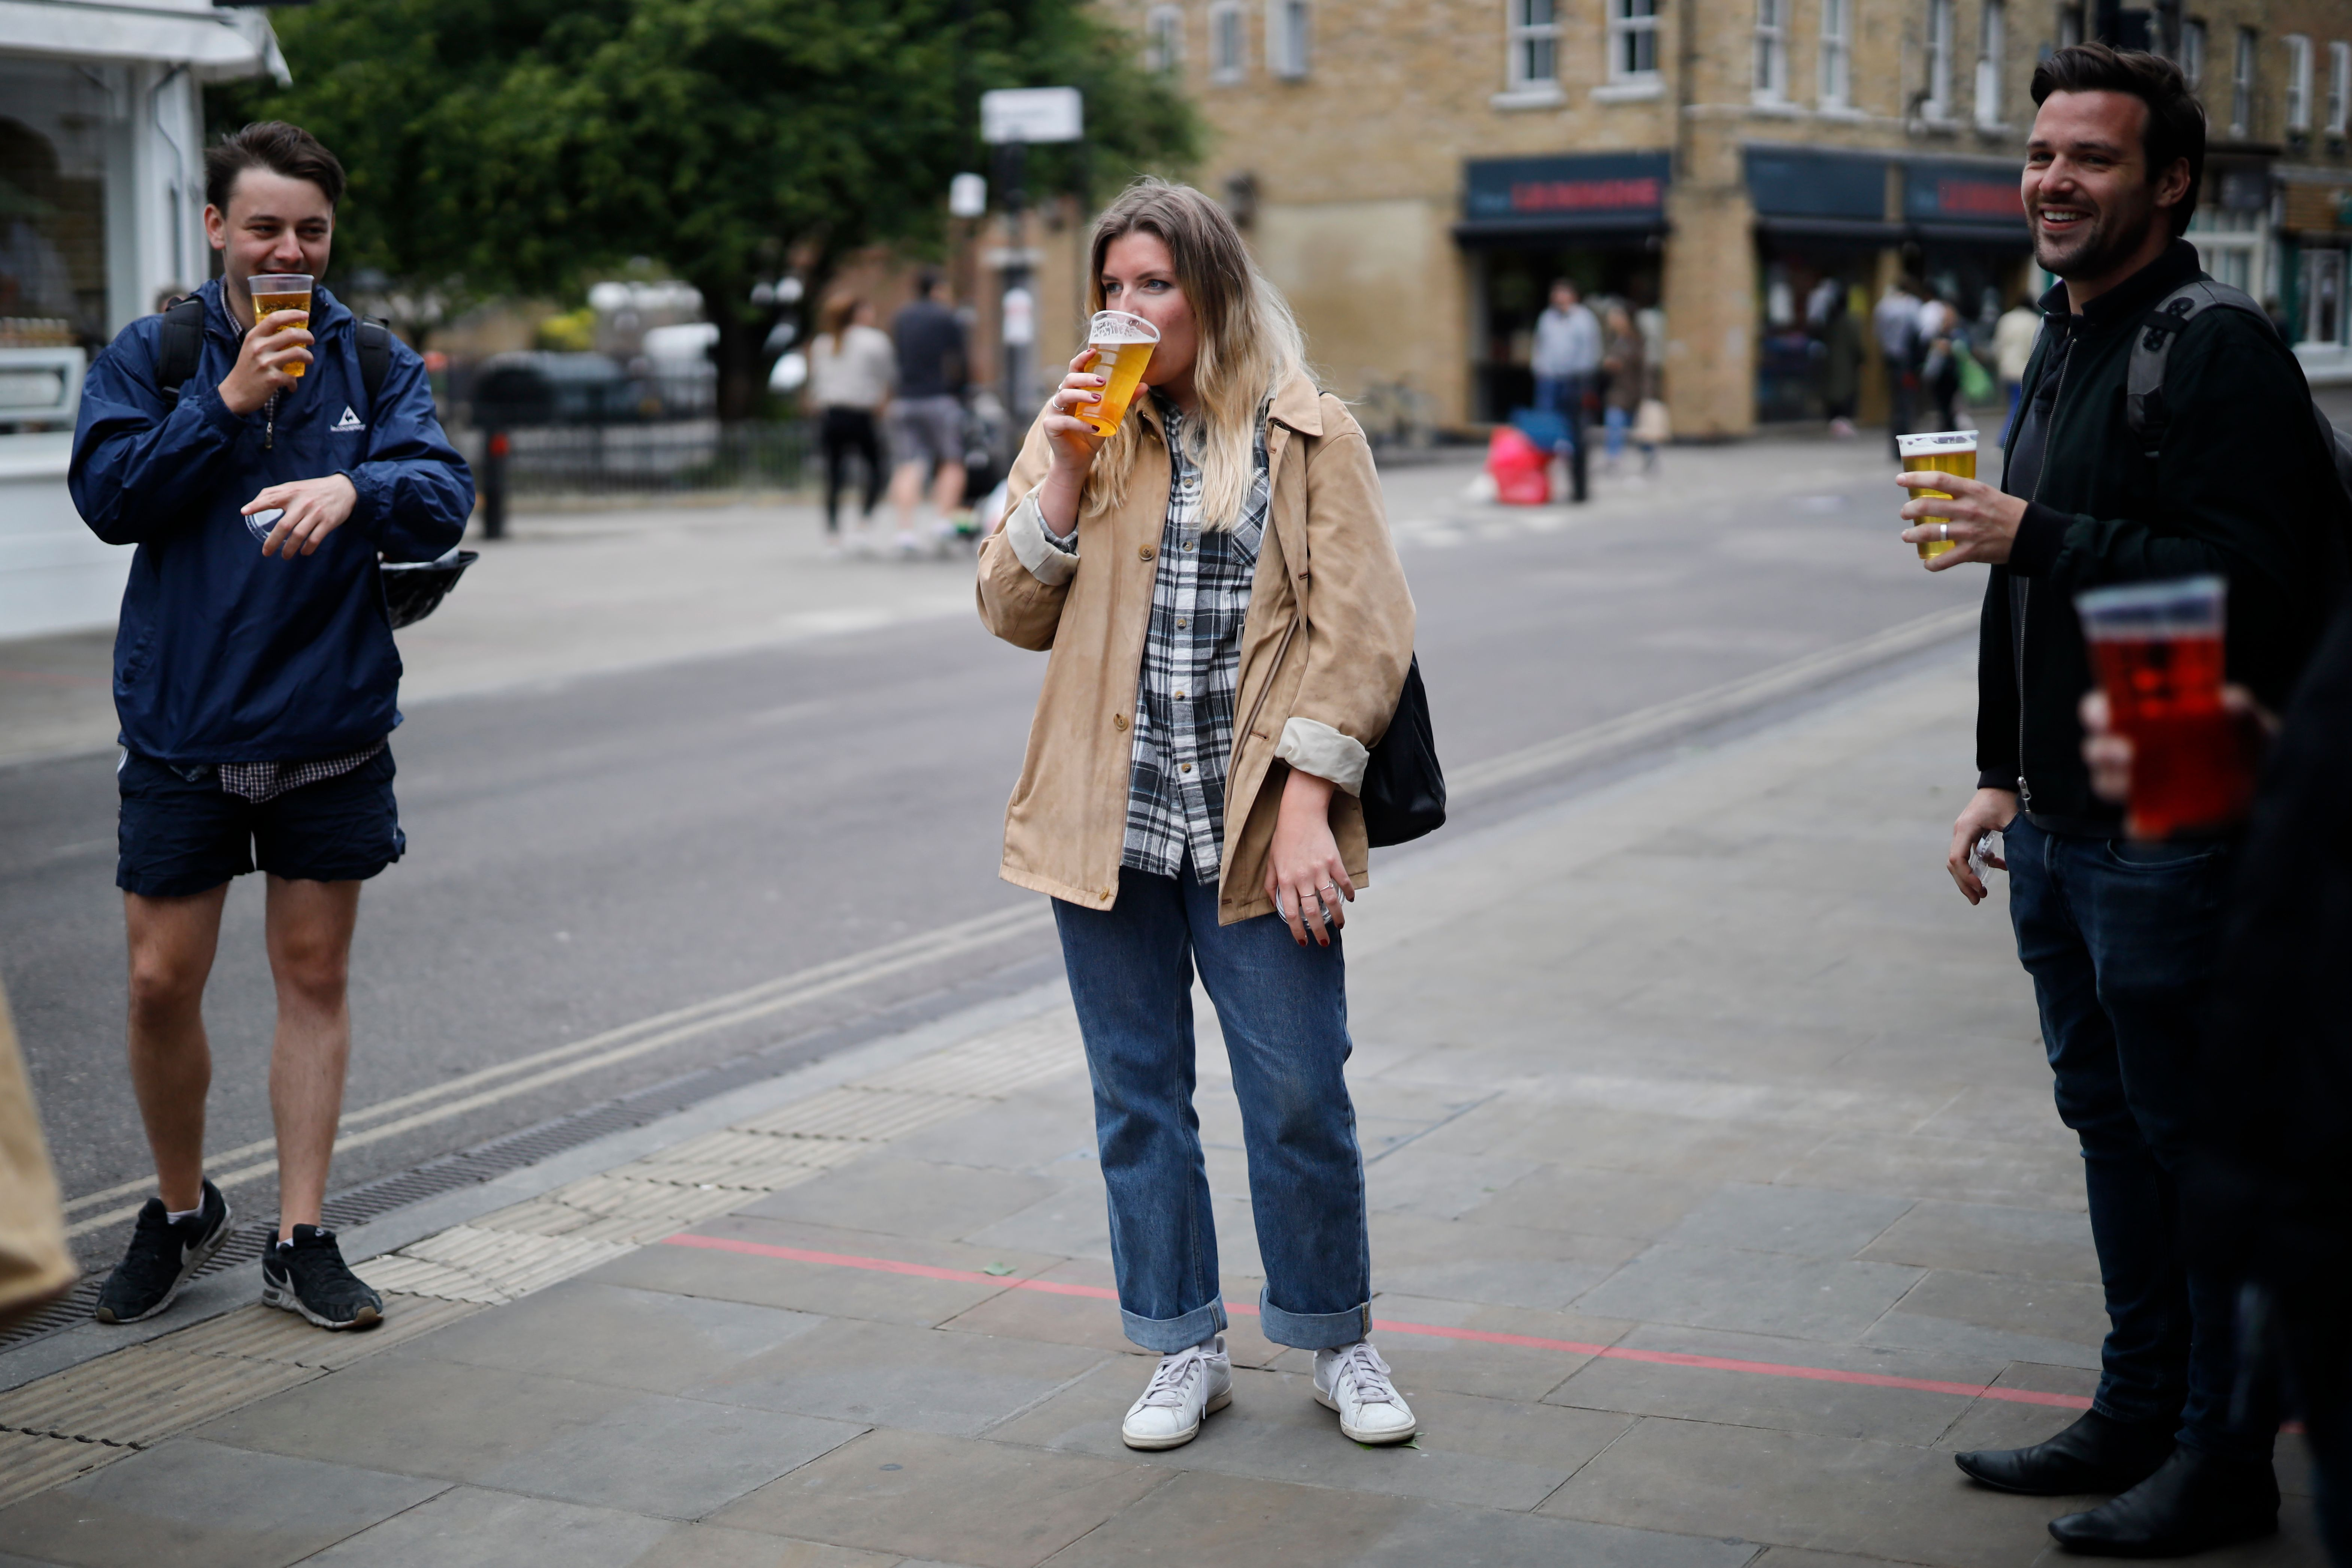 Customers chat as they drink their takeaway draught beer in plastic cups outside a pub in Broadway Market, London on June  5, 2020, as lockdown measures are eased during the novel coronavirus COVID-19 pandemic. (Photo by Tolga Akmen / AFP) (Photo by TOLGA AKMEN/AFP via Getty Images)